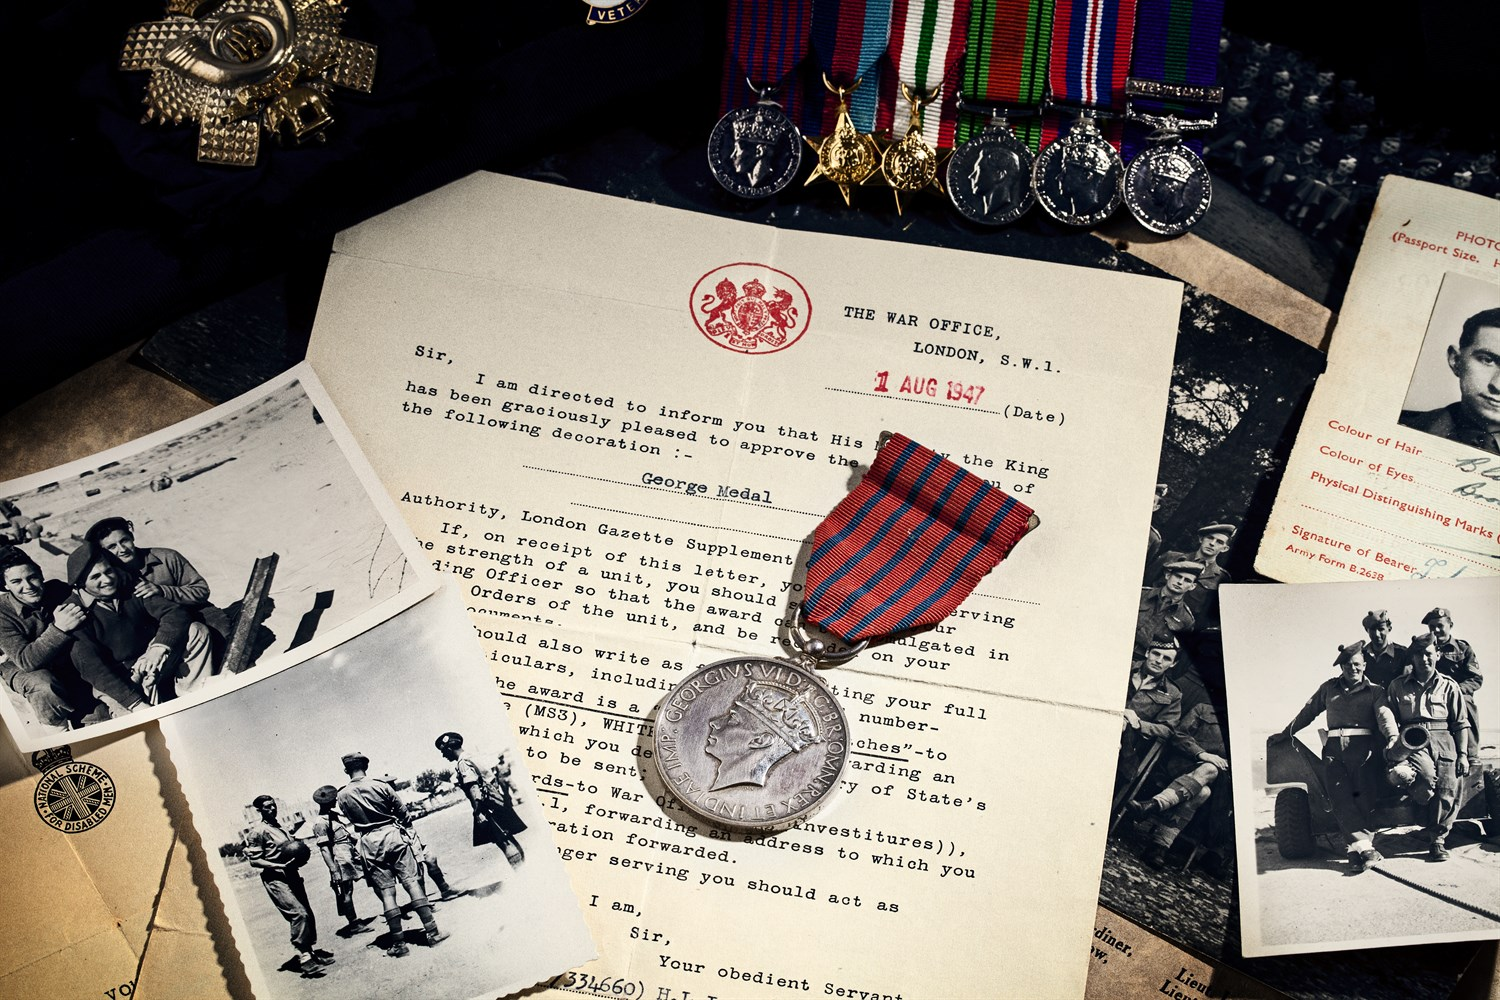 367 - A George Medal to Lt. James Masson, commissioned to Highland Light Infantry served with Argyll and Sutherland Highlanders